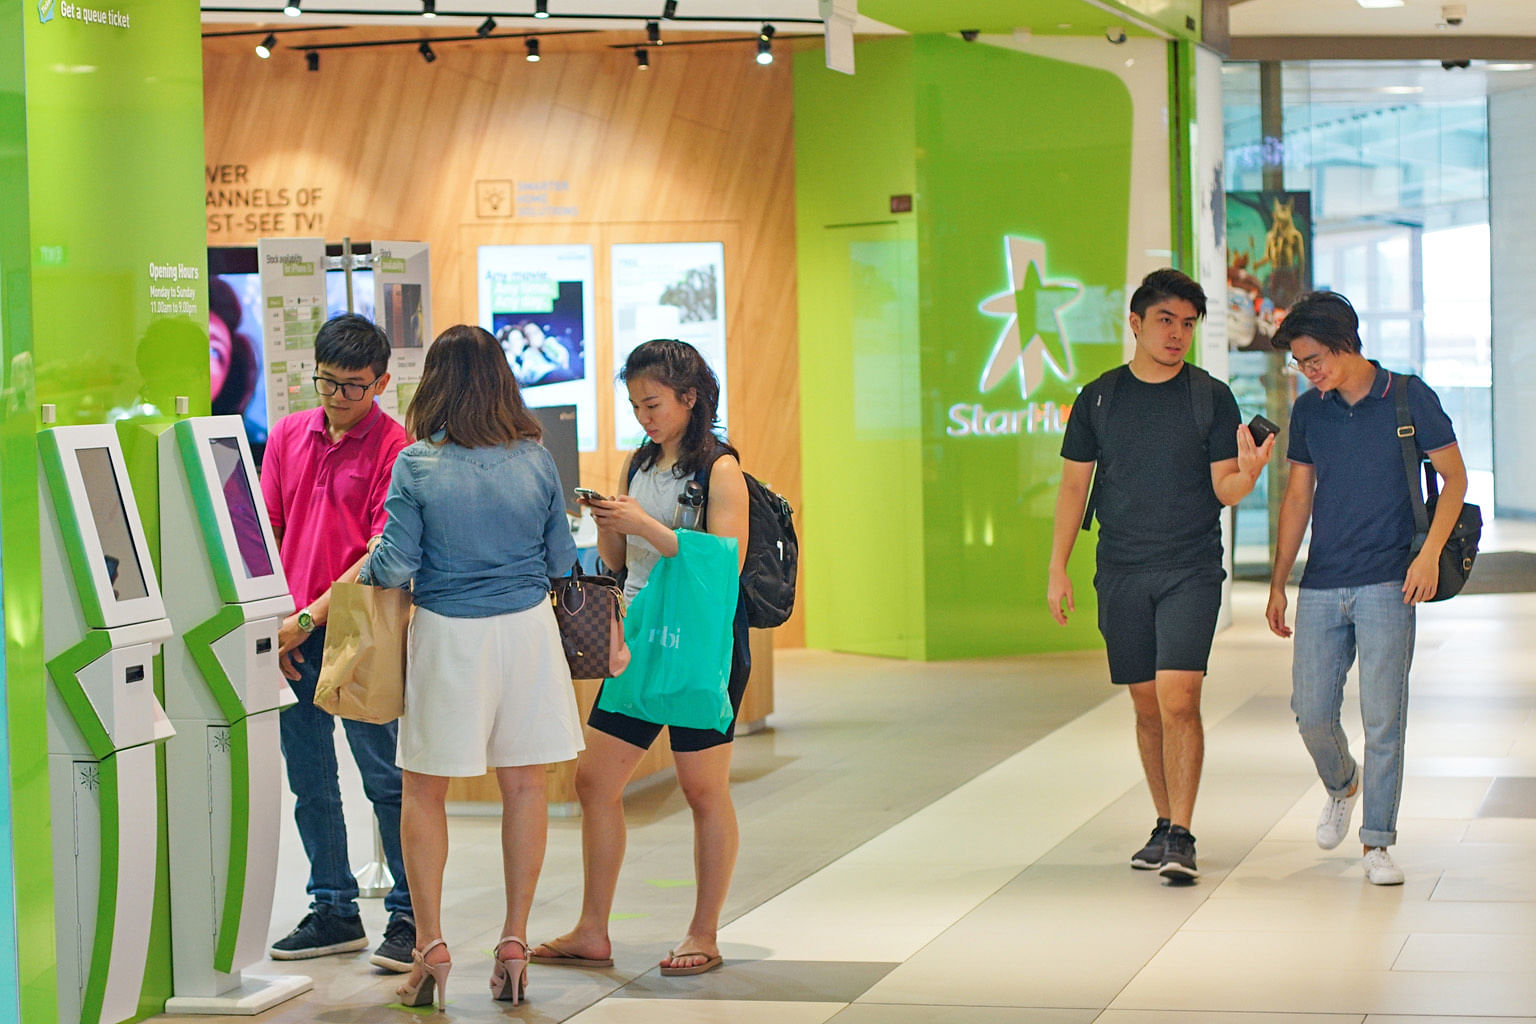 StarHub to end cable services and go fully fibre, Singapore News